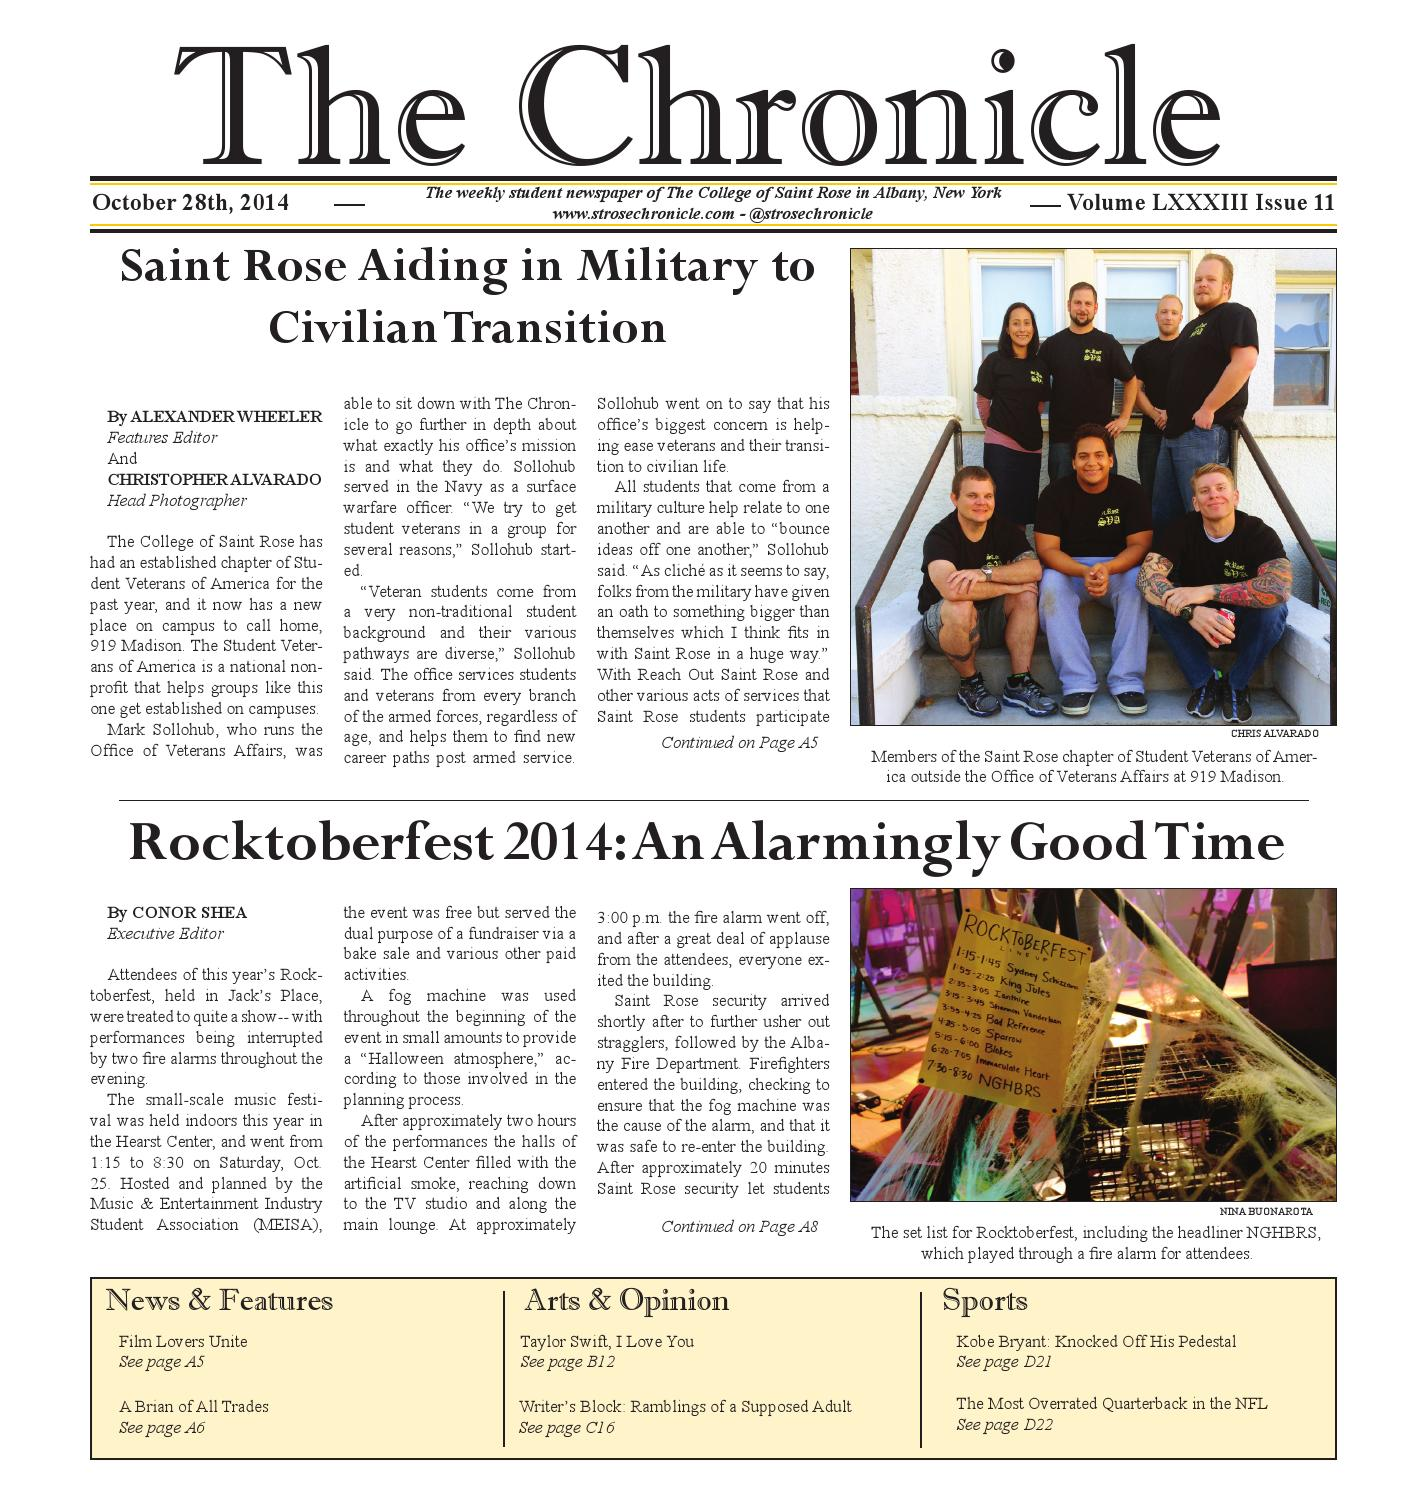 The Chronicle October 28 2014 by The Saint Rose Chronicle